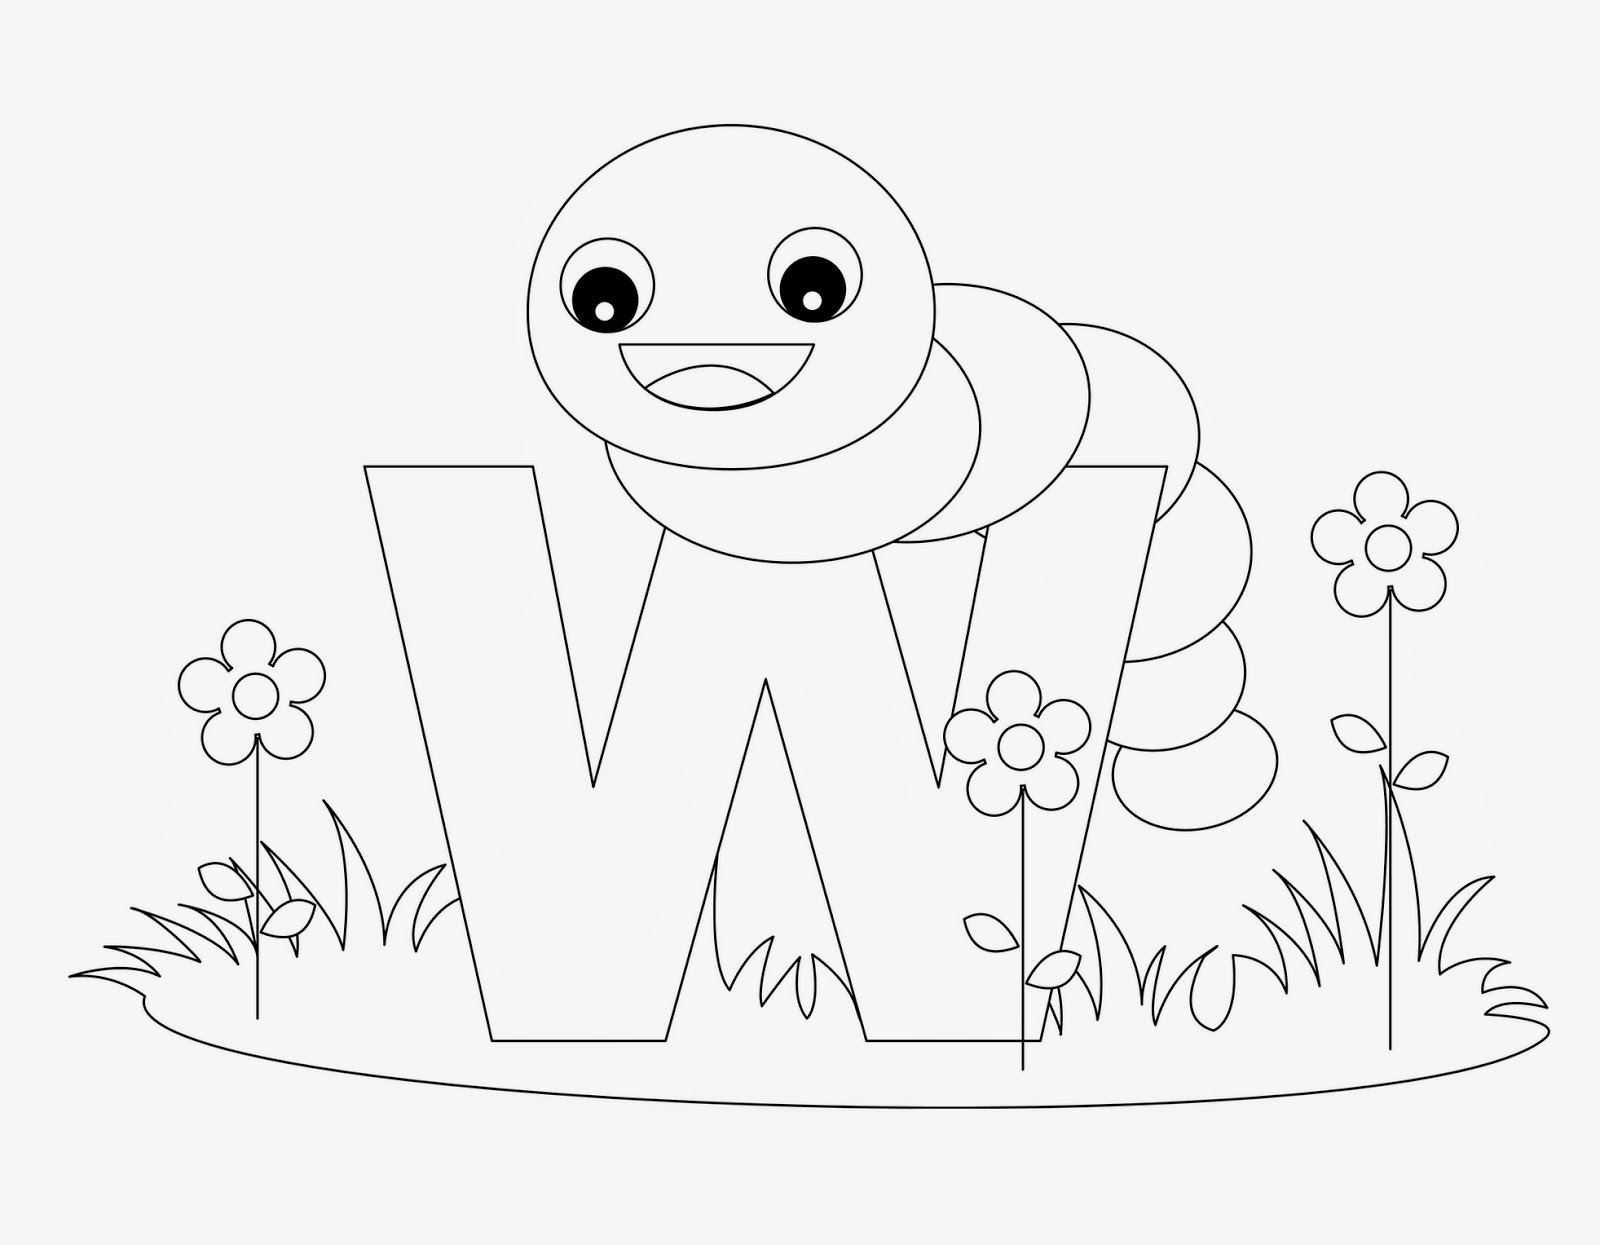 Printable Coloring Pages Printable Alphabet Coloring Pages